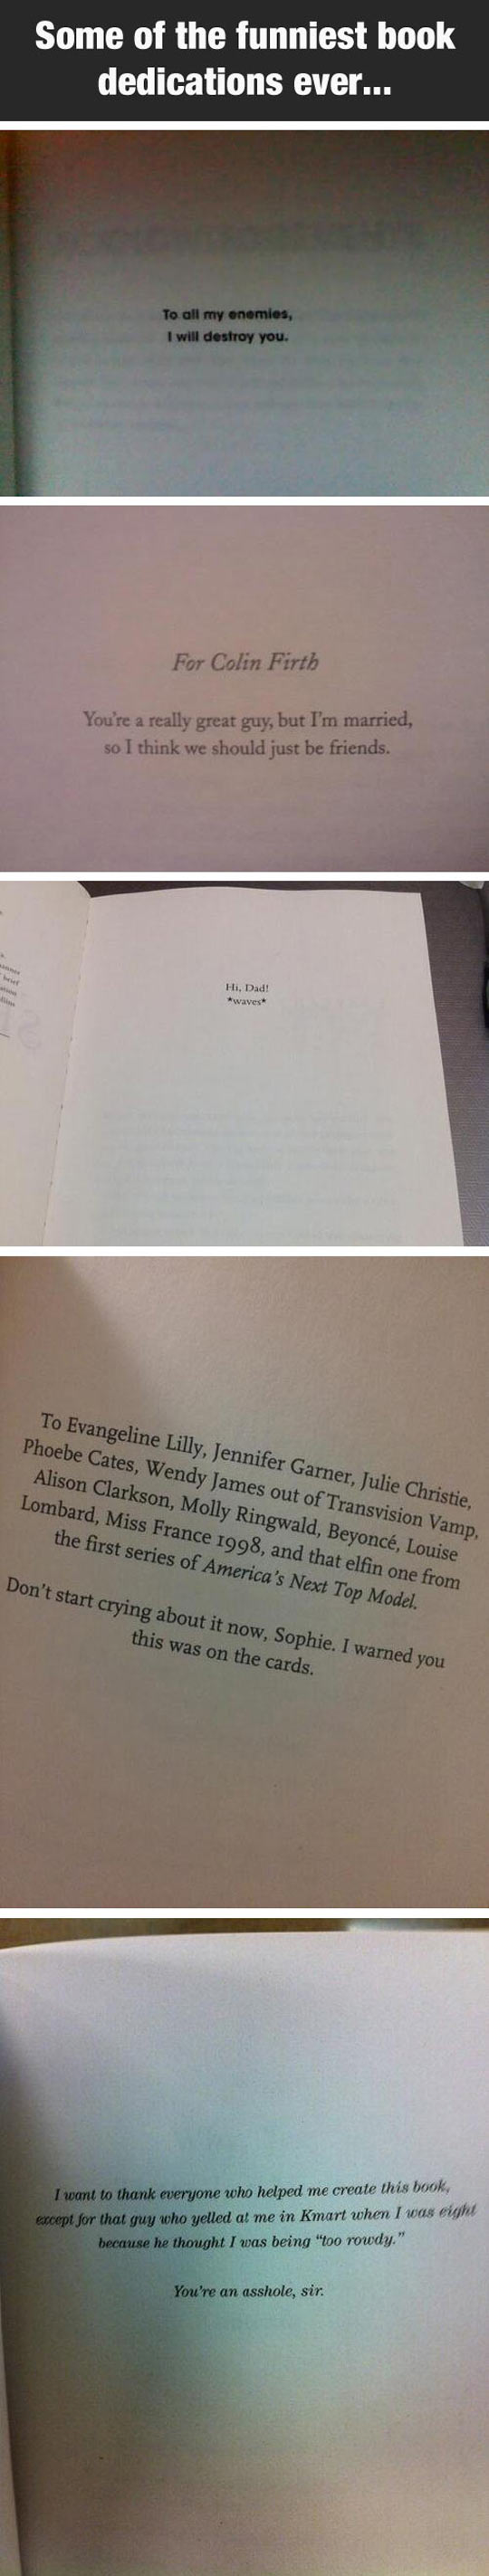 Some Of The Best Book Dedications Ever